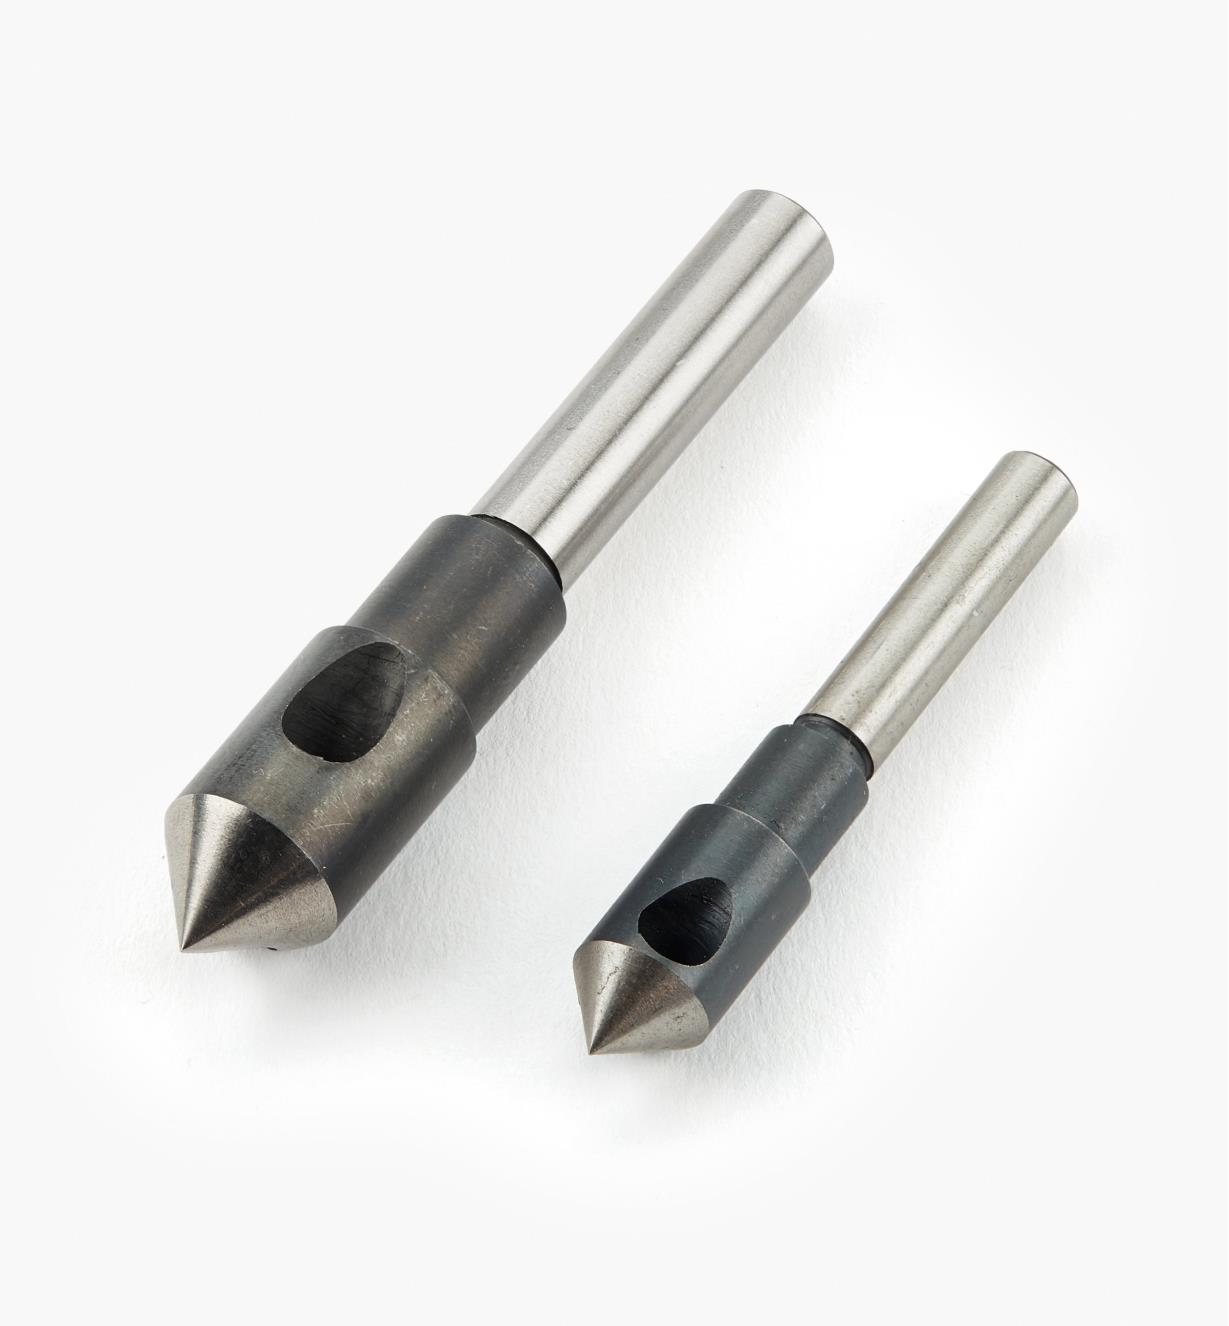 06J5020 - Pr. of Countersinks